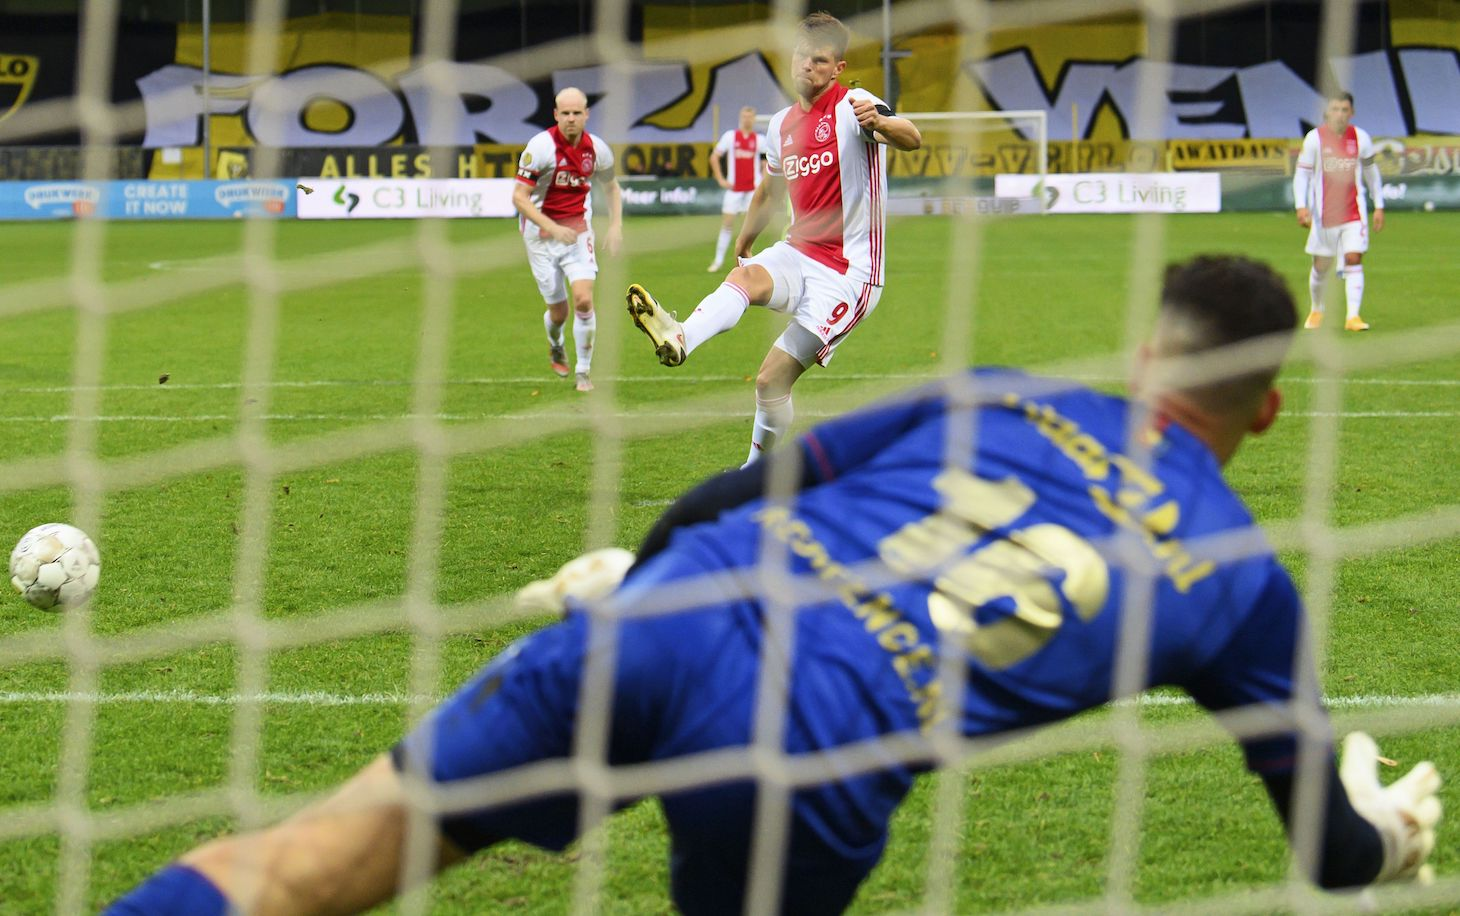 Ajax' Dutch forward Klaas Jan Huntelaar (C) scores the 0-10 goal during the Dutch Eredivisie football match between VVV Venlo and Ajax Amsterdam at De Koel stadium in Venlo, south-eastern Netherlands, on October 24, 2020. - Ajax won 13-0 against VVV Venlo, the biggest victory in the history of the Dutch championship.